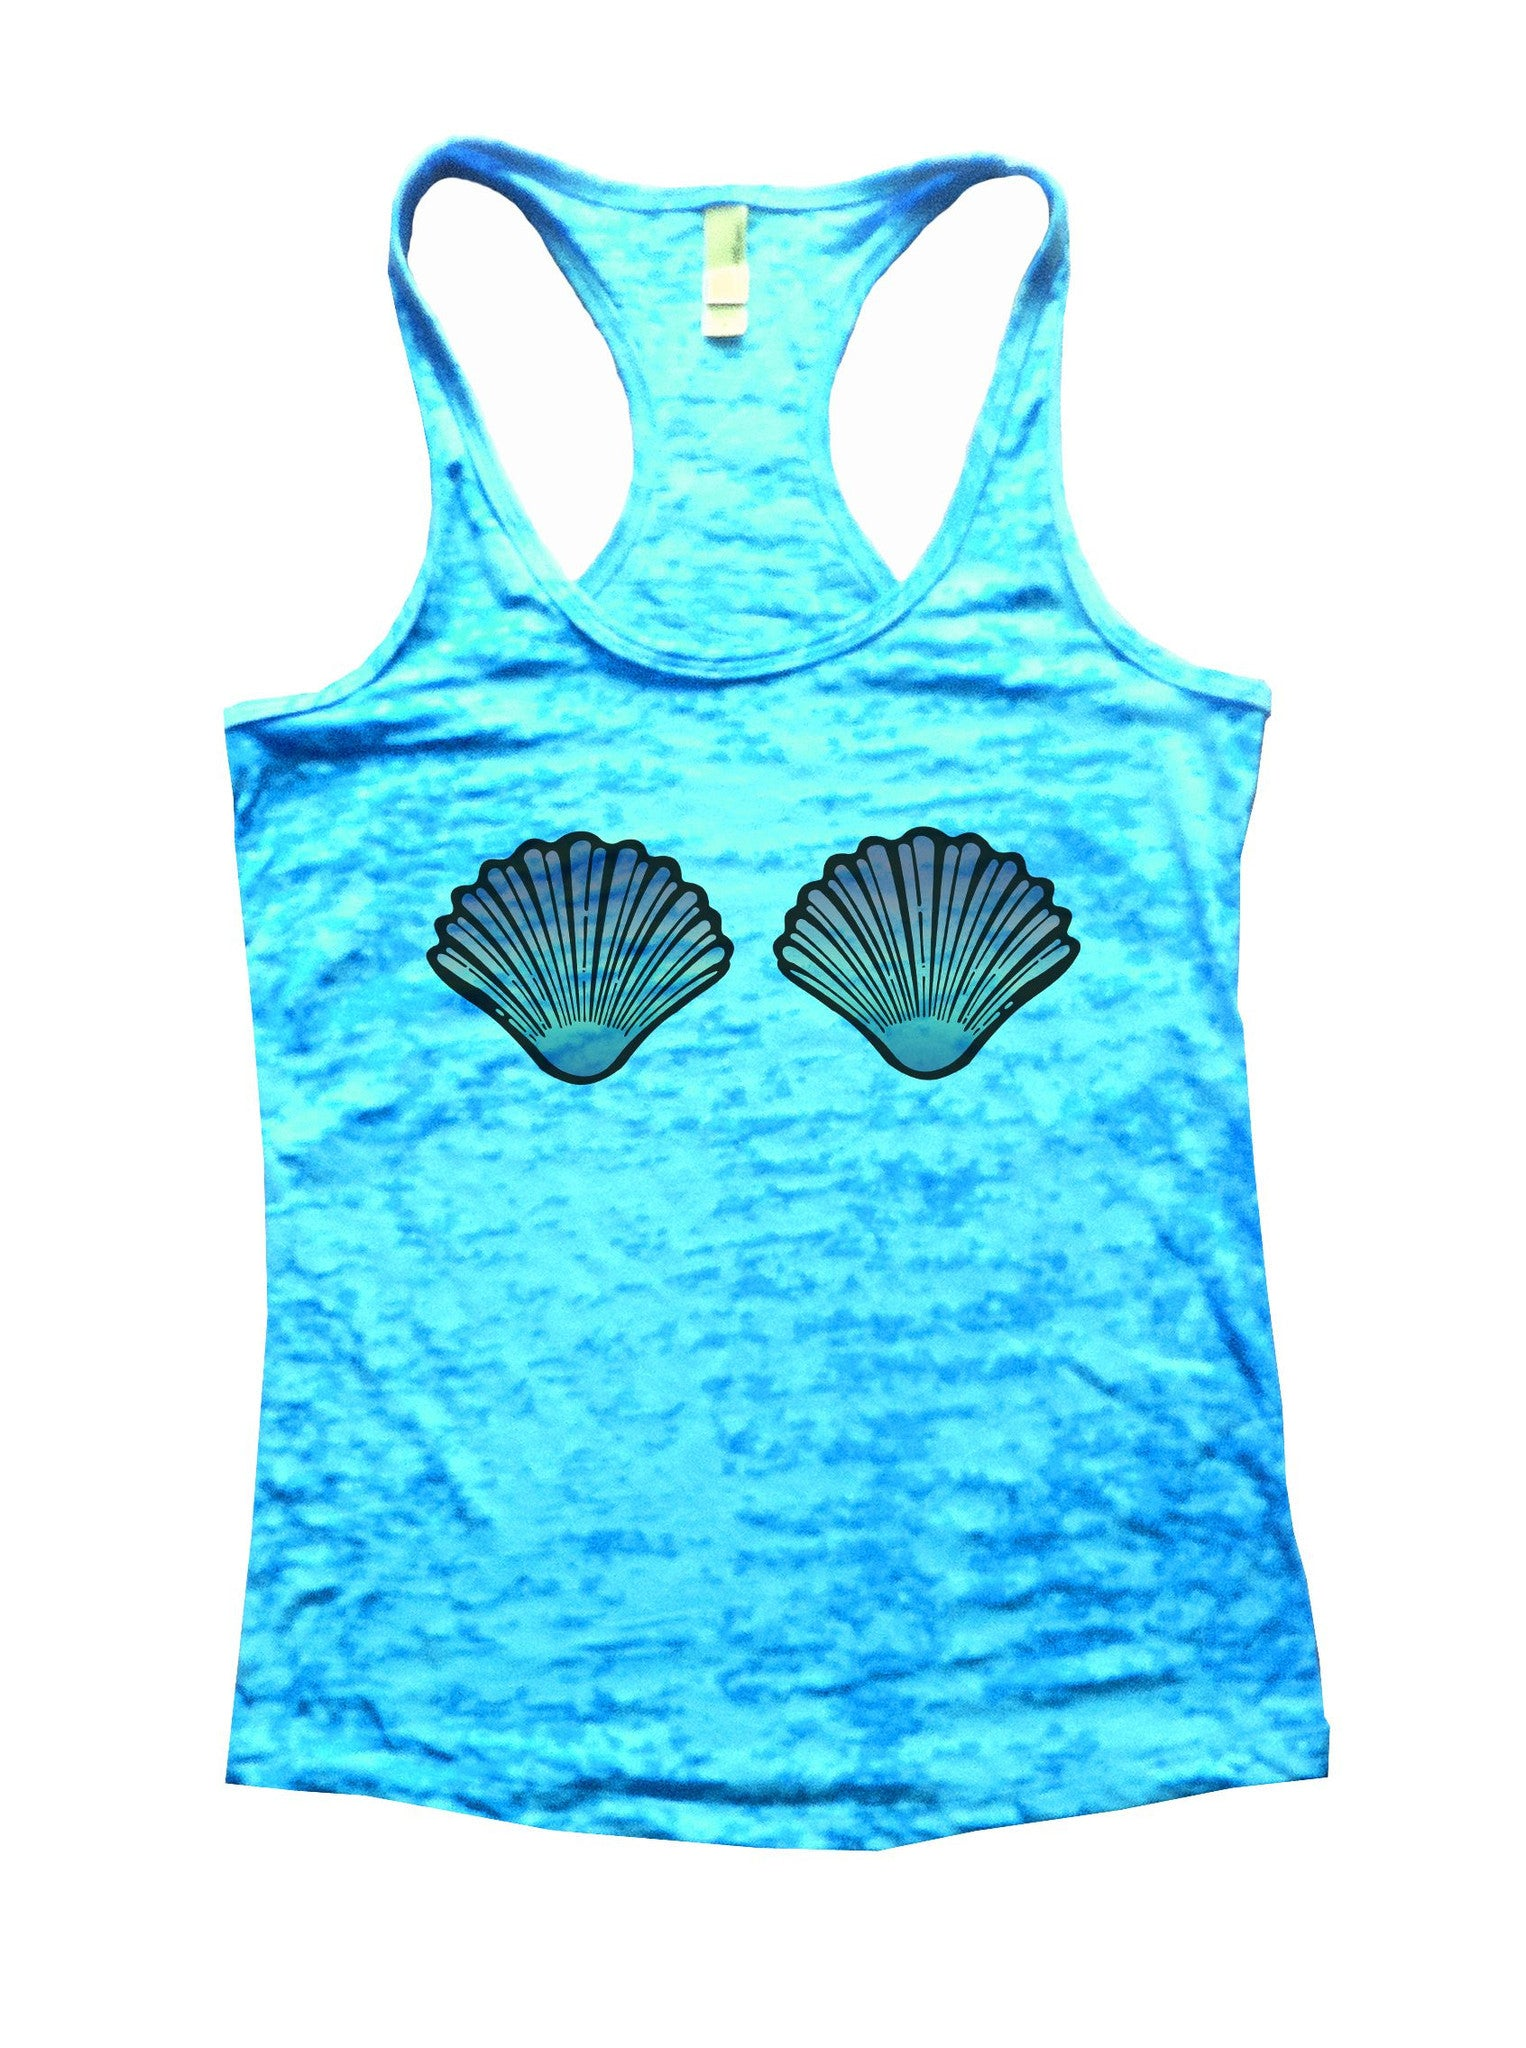 Shell Burnout Tank Top By BurnoutTankTops.com - 1080 - Funny Shirts Tank Tops Burnouts and Triblends  - 3